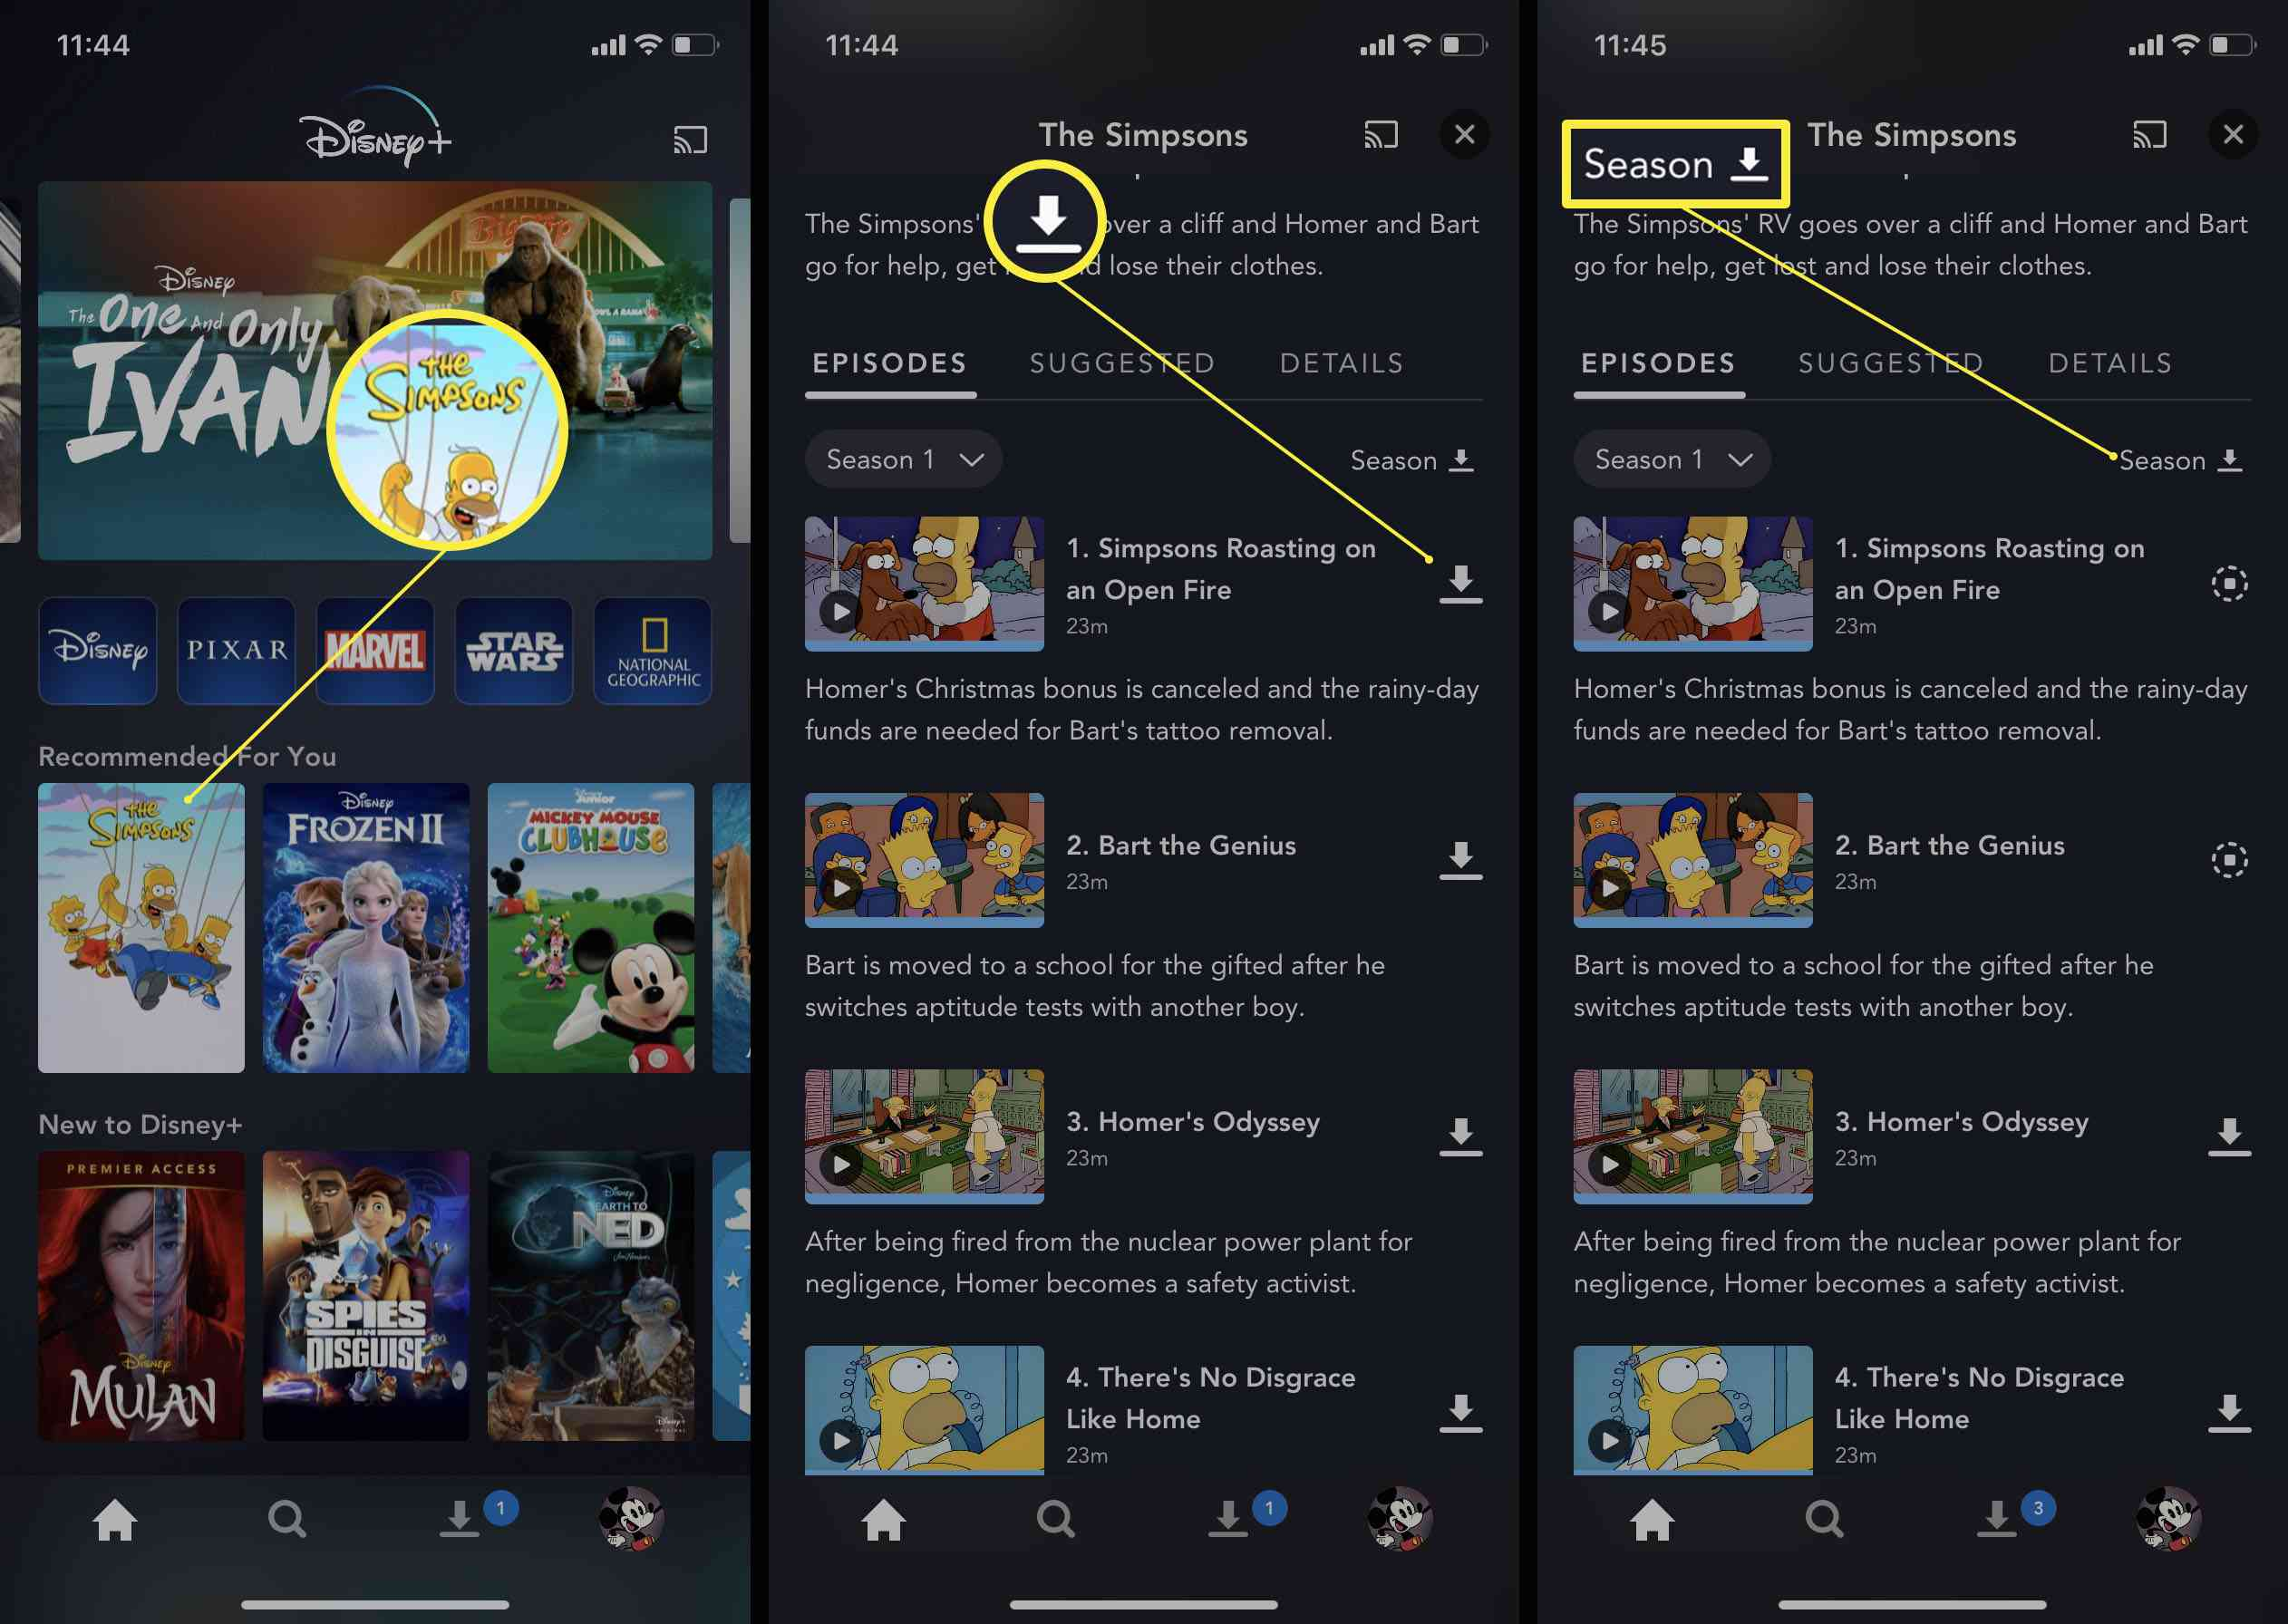 Steps needed in the Disney Plus app to download episodes or seasons of a TV show